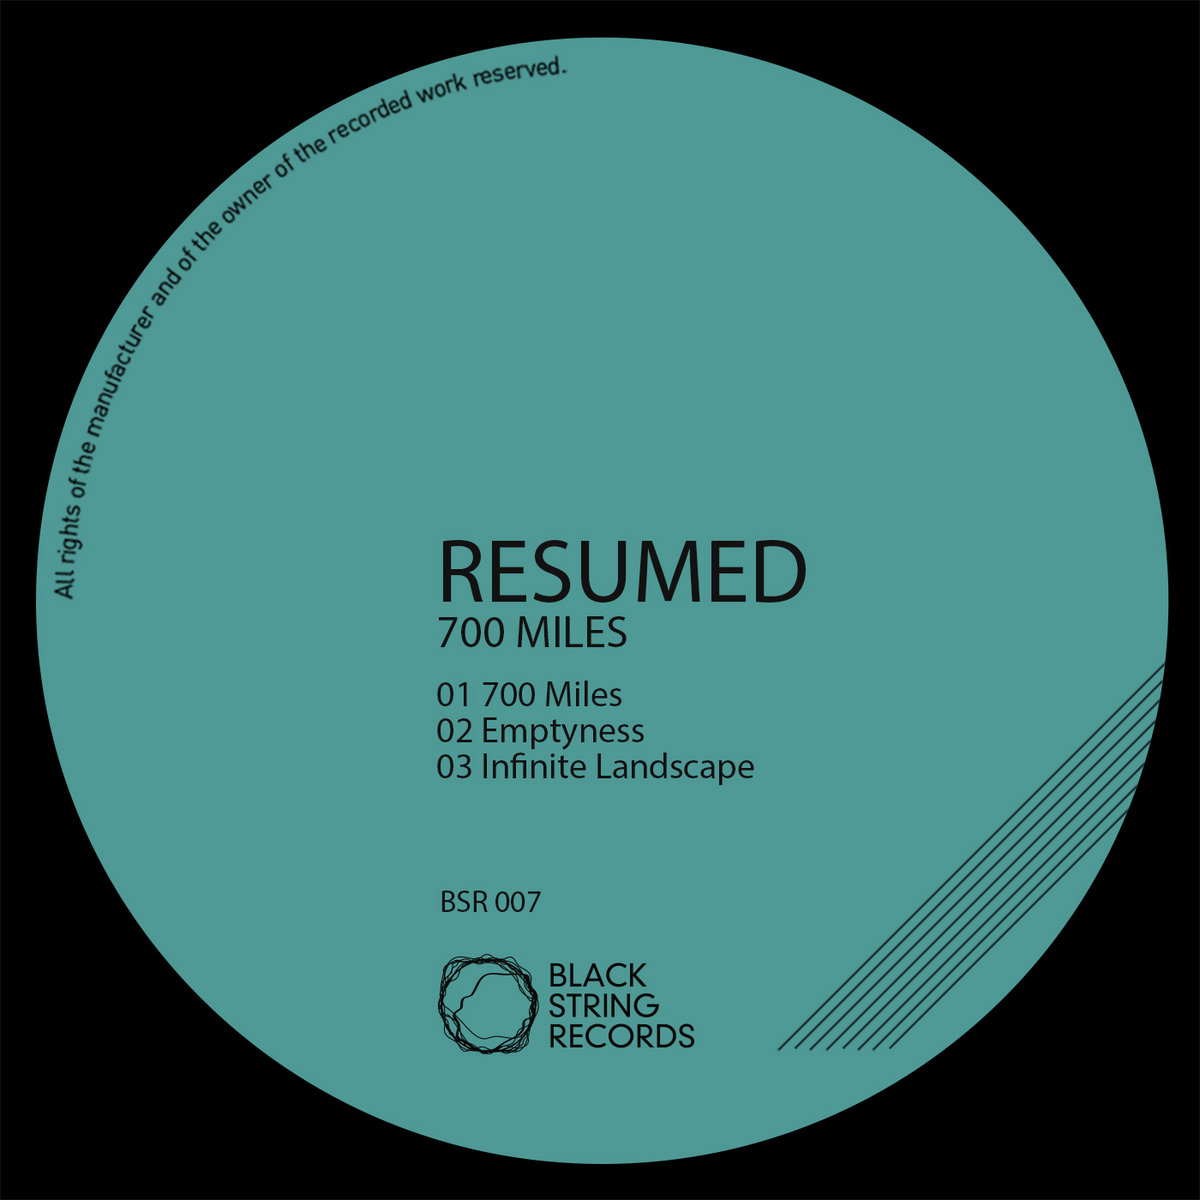 bsr007 resumed 700 miles ep black string records